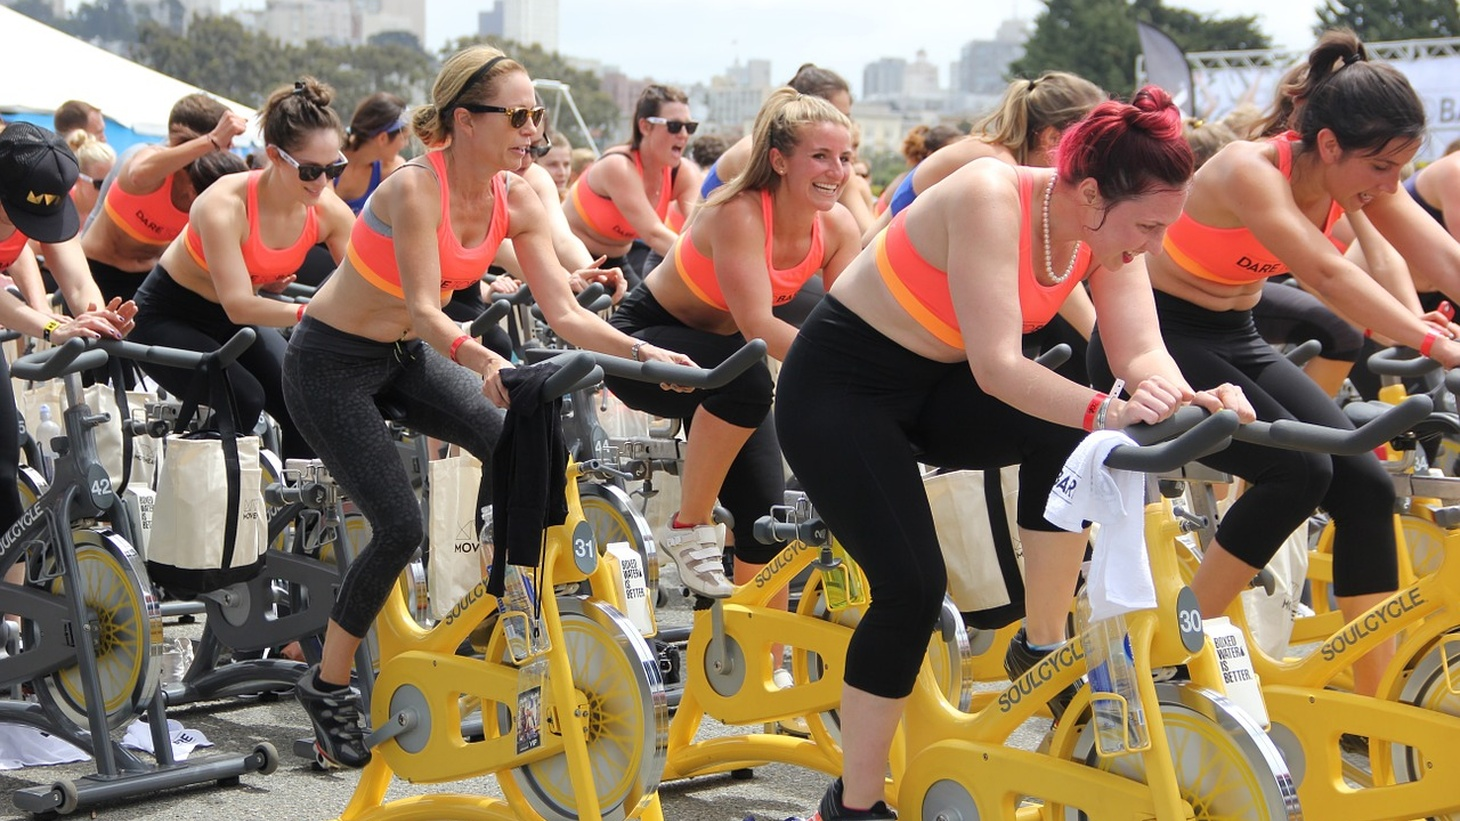 Women on SoulCycle indoor bikes.